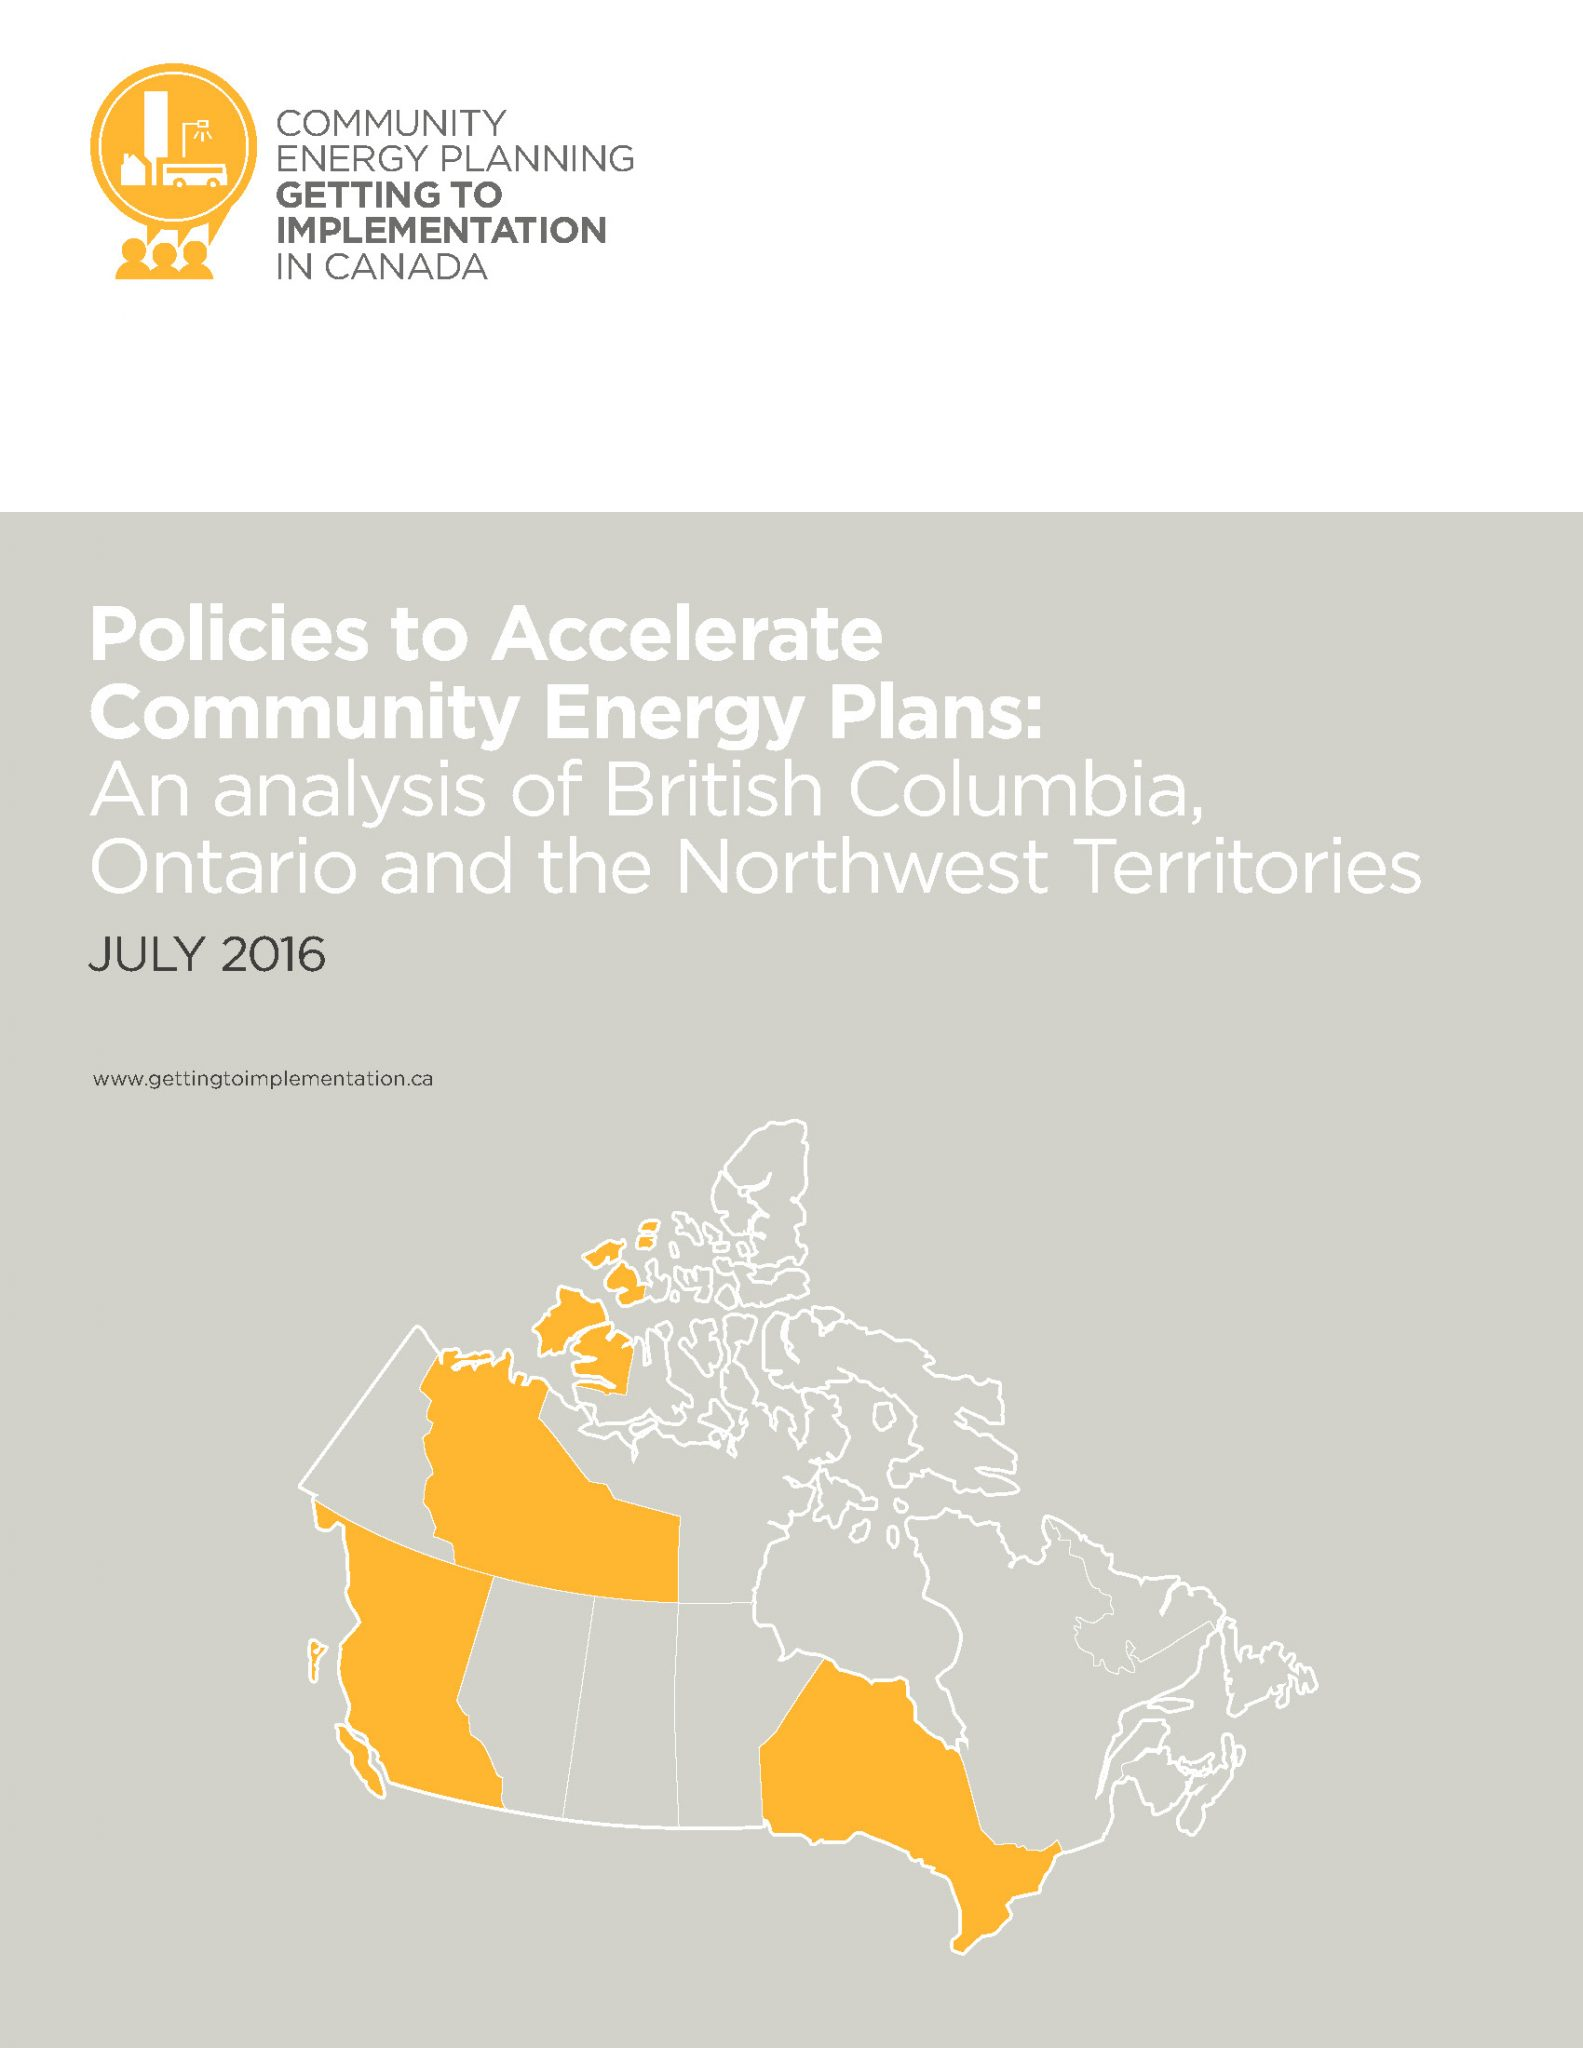 Policies to Accelerate Community Energy Plans